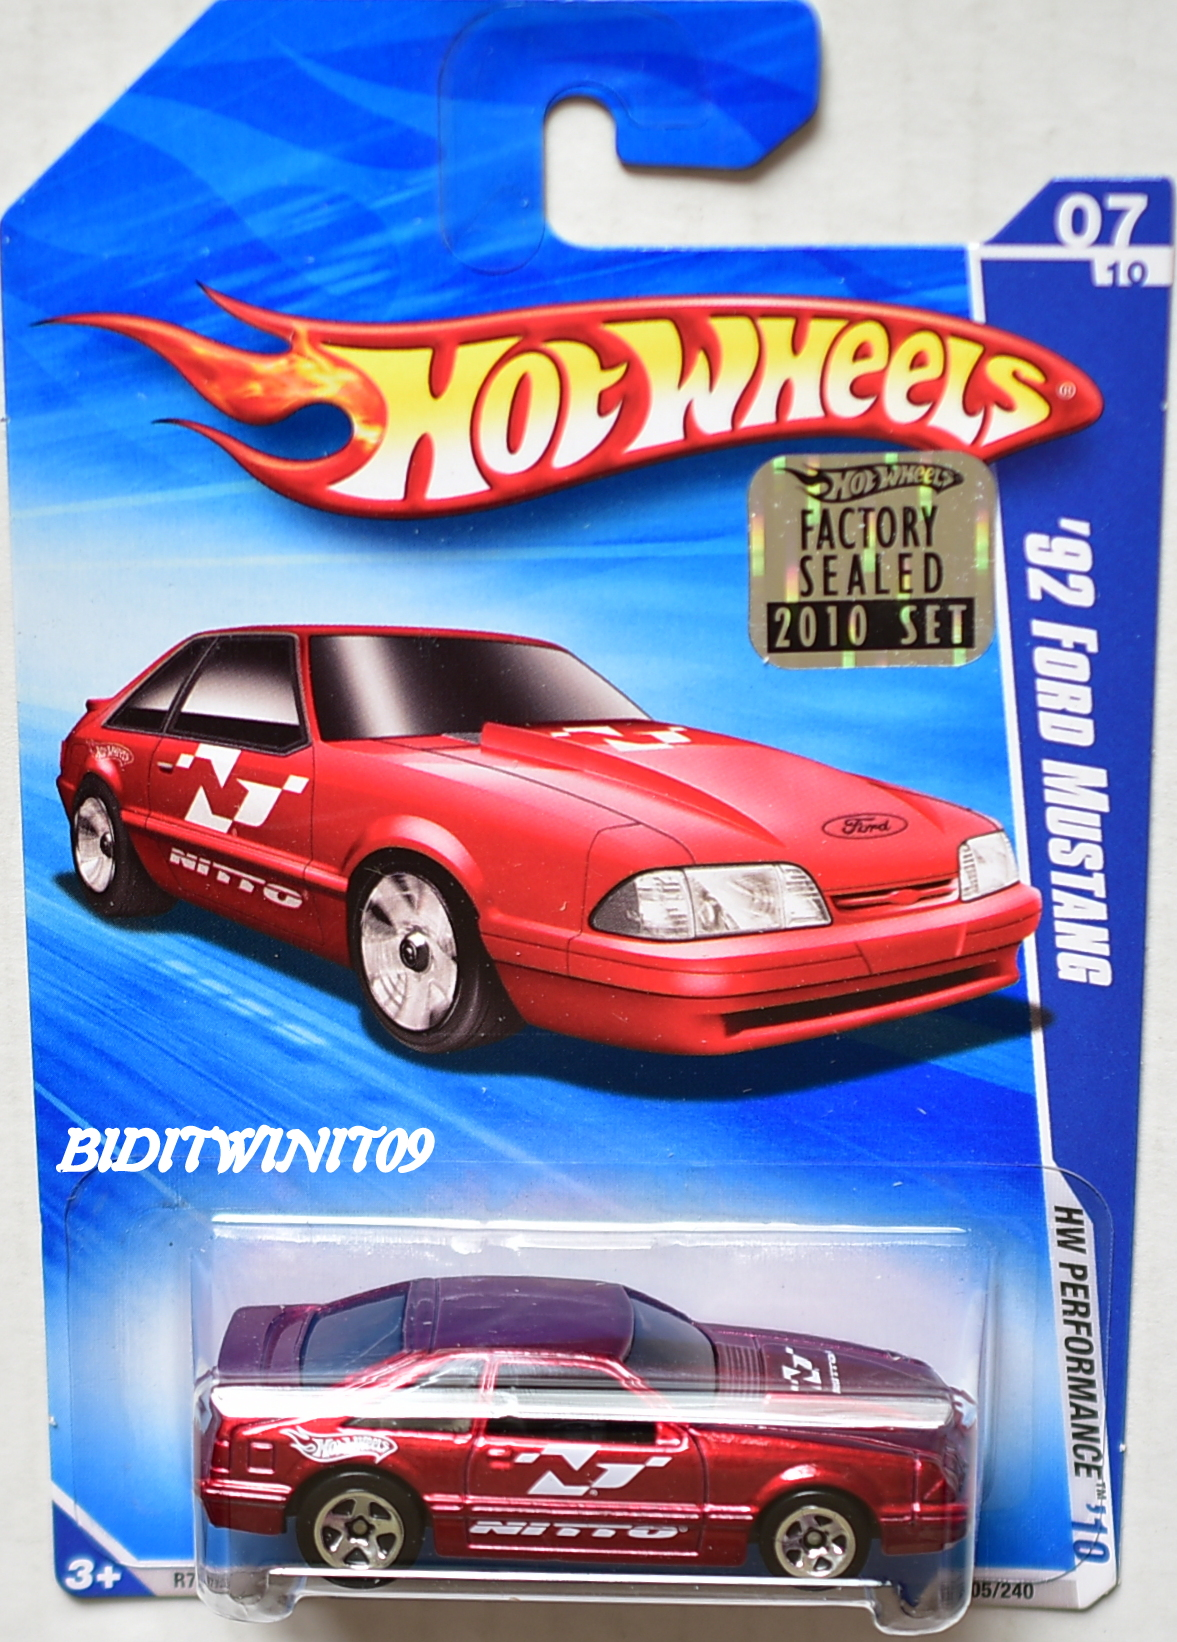 HOT WHEELS 2010 HW PERFORMANCE '92 FORD MUSTANG #07/10 RED FACTORY SEALED E+